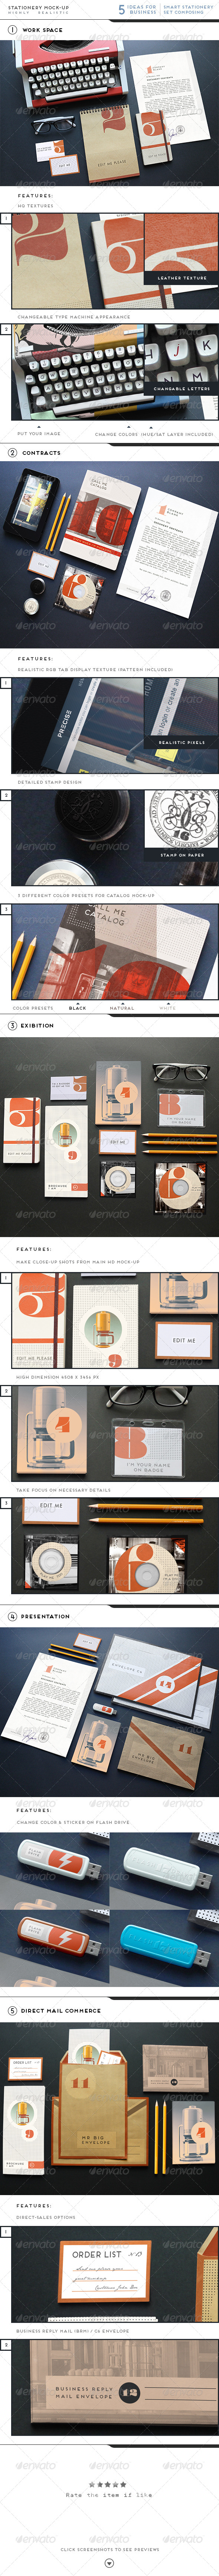 GraphicRiver Realistic Stationery Branding Mock-Up 6579553